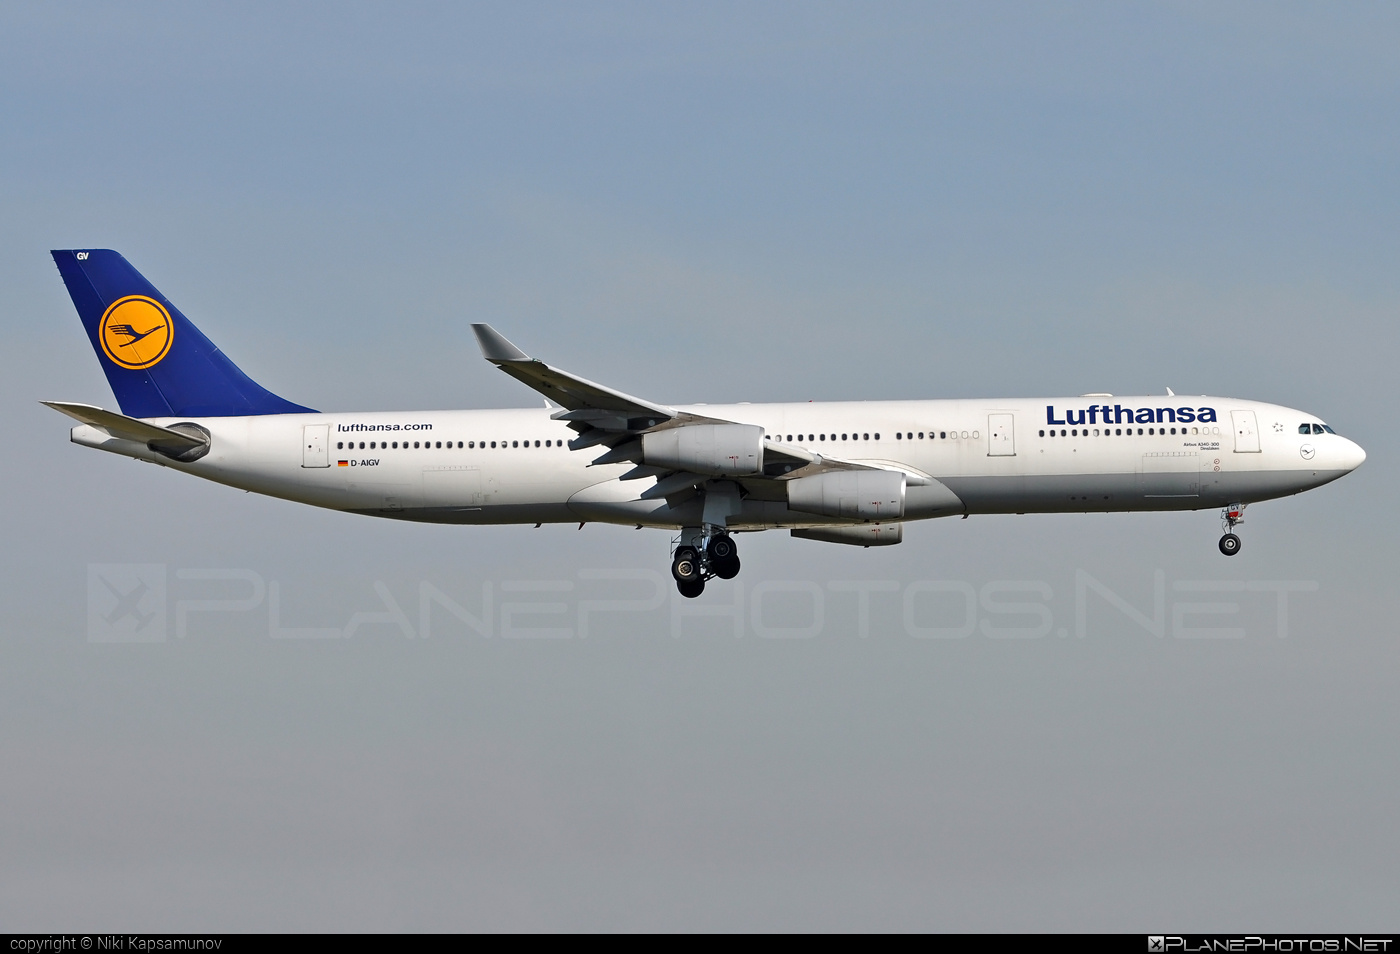 Airbus A340-313 - D-AIGV operated by Lufthansa #a340 #a340family #airbus #airbus340 #lufthansa